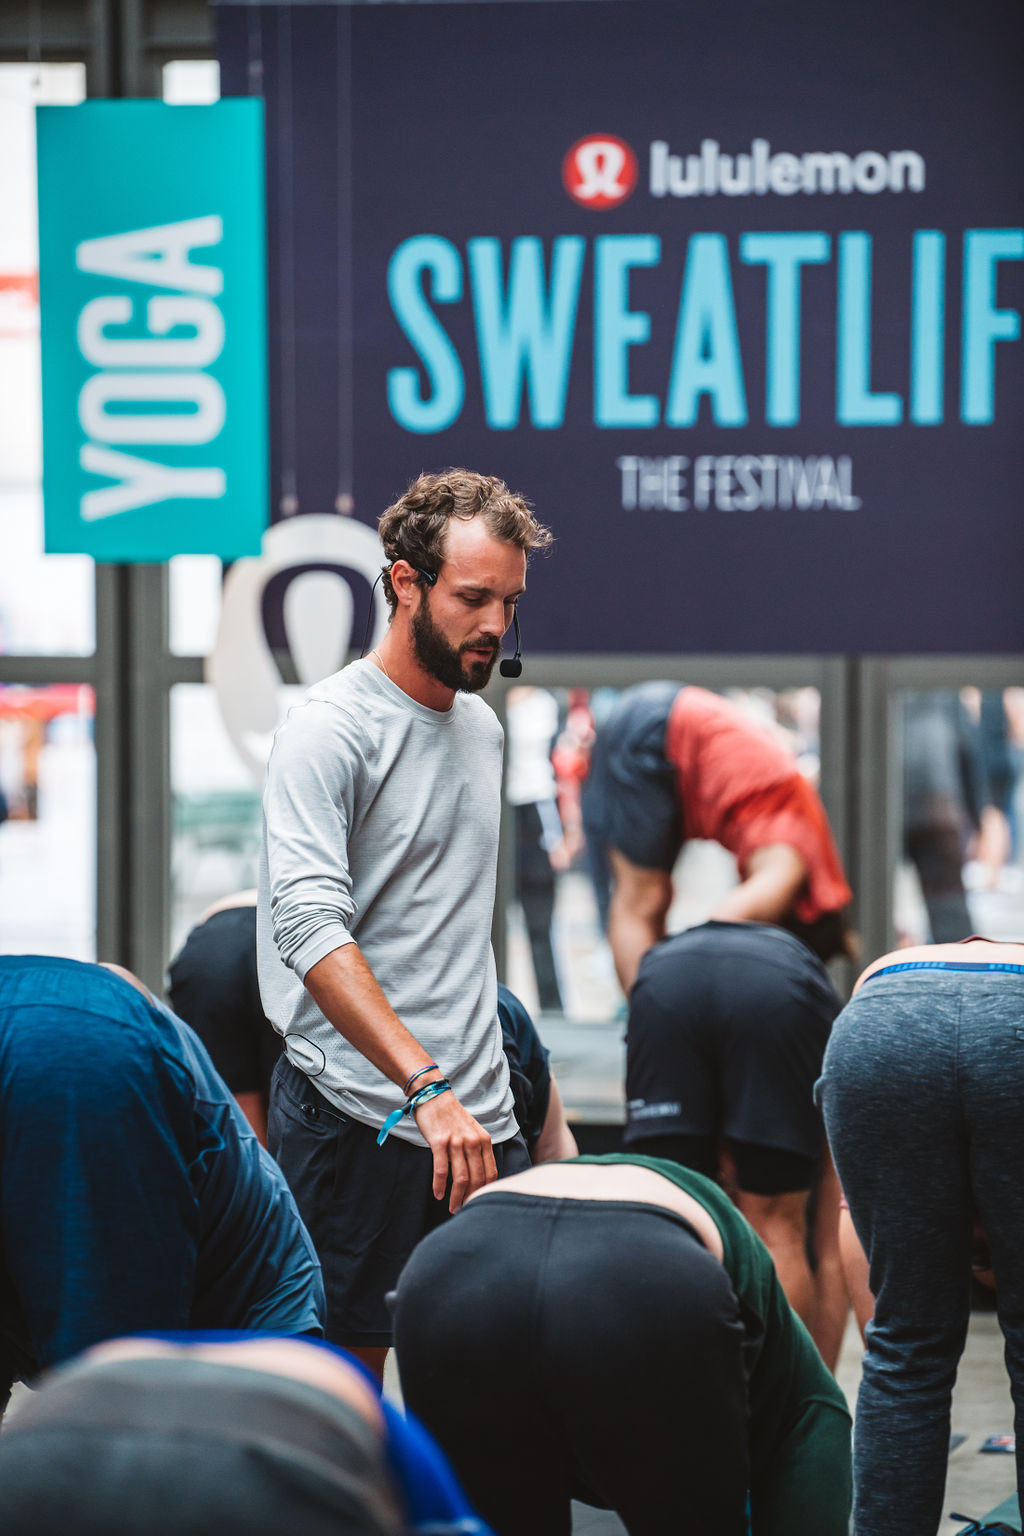 SWEATLIFE-Morning-Lululemon-©albindurand